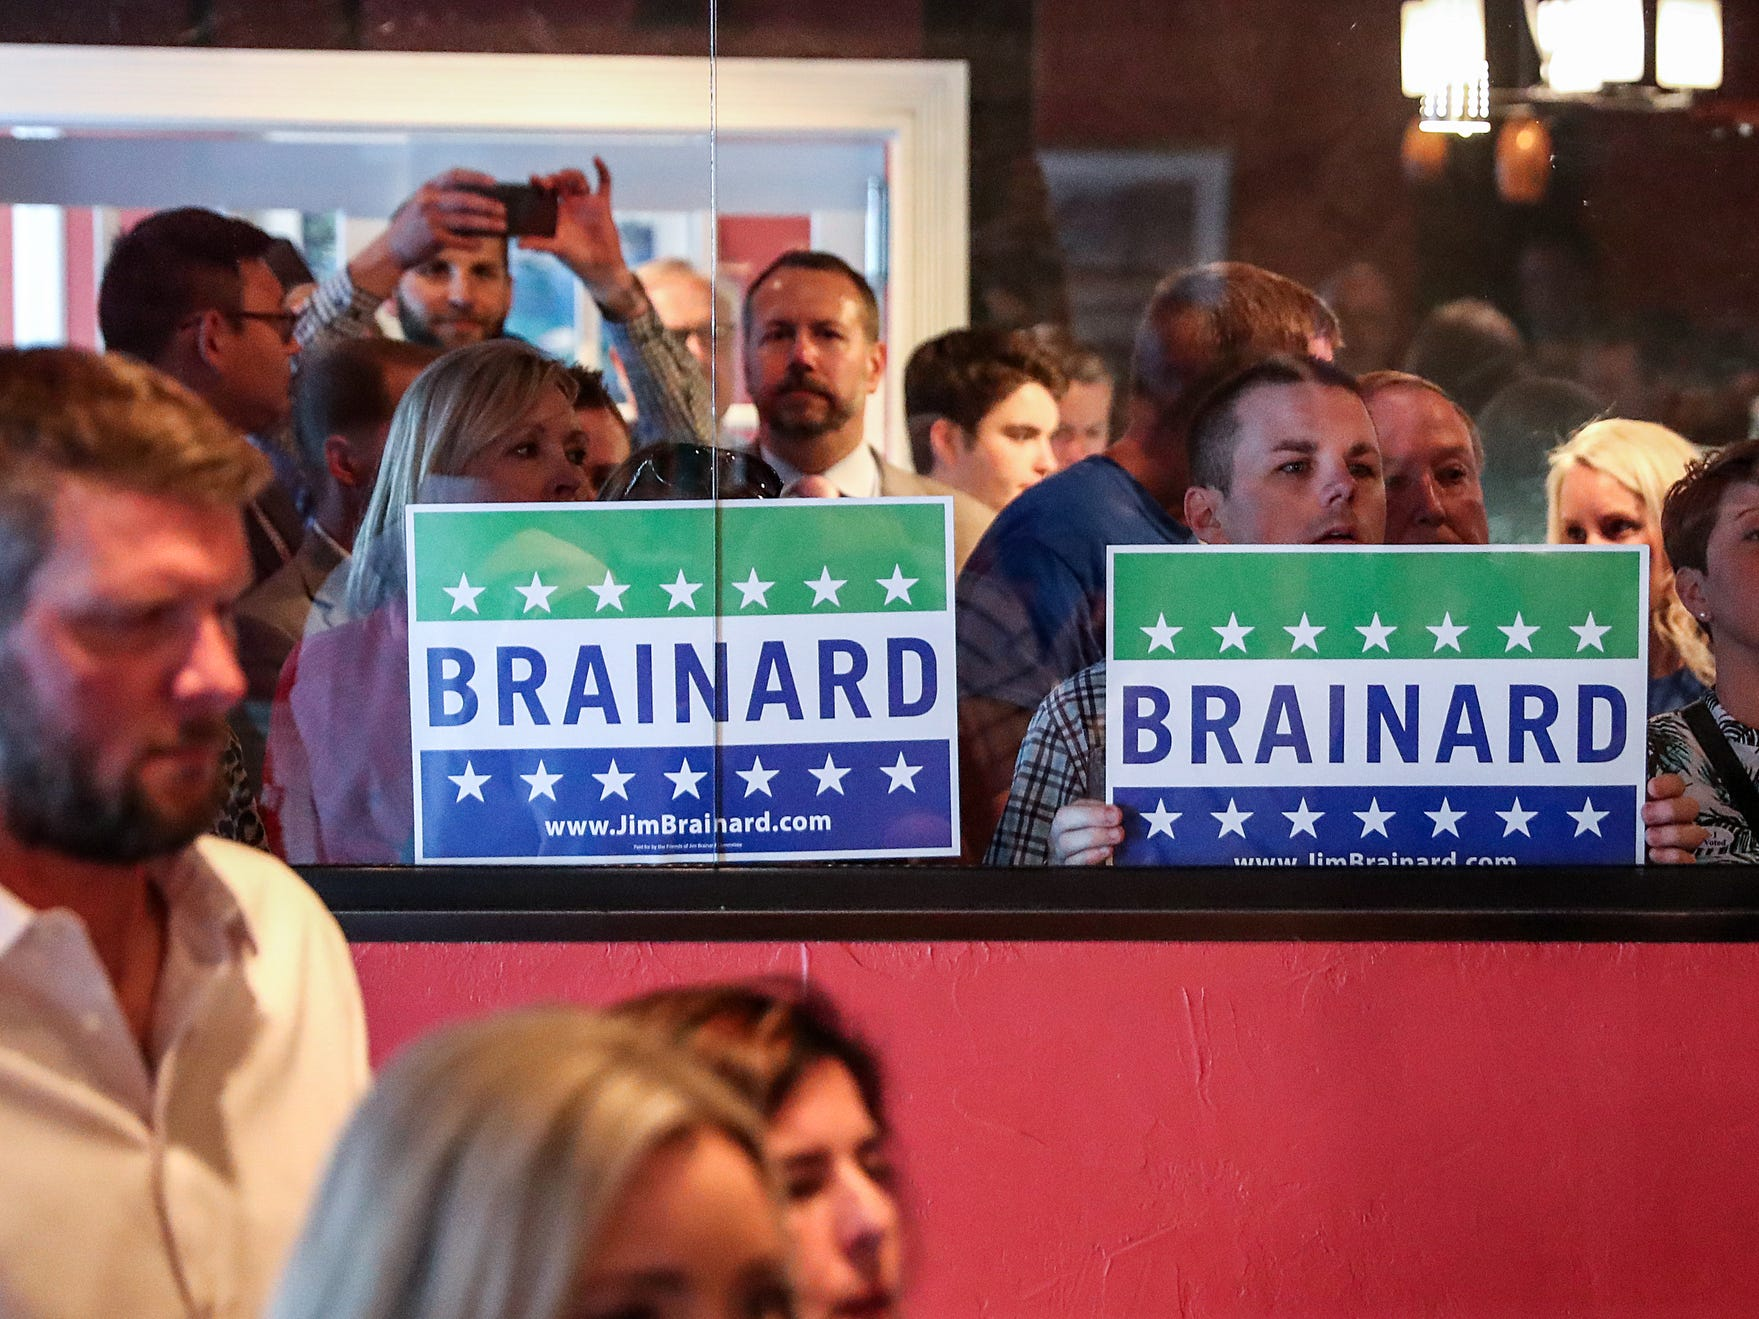 Supporters and friends hold signs for Carmel Mayor Jim Brainard at an election watch party for Carmel Republican candidates at DonatelloÕs Italian Restaurant in Carmel, Ind., Tuesday, May 7, 2019.